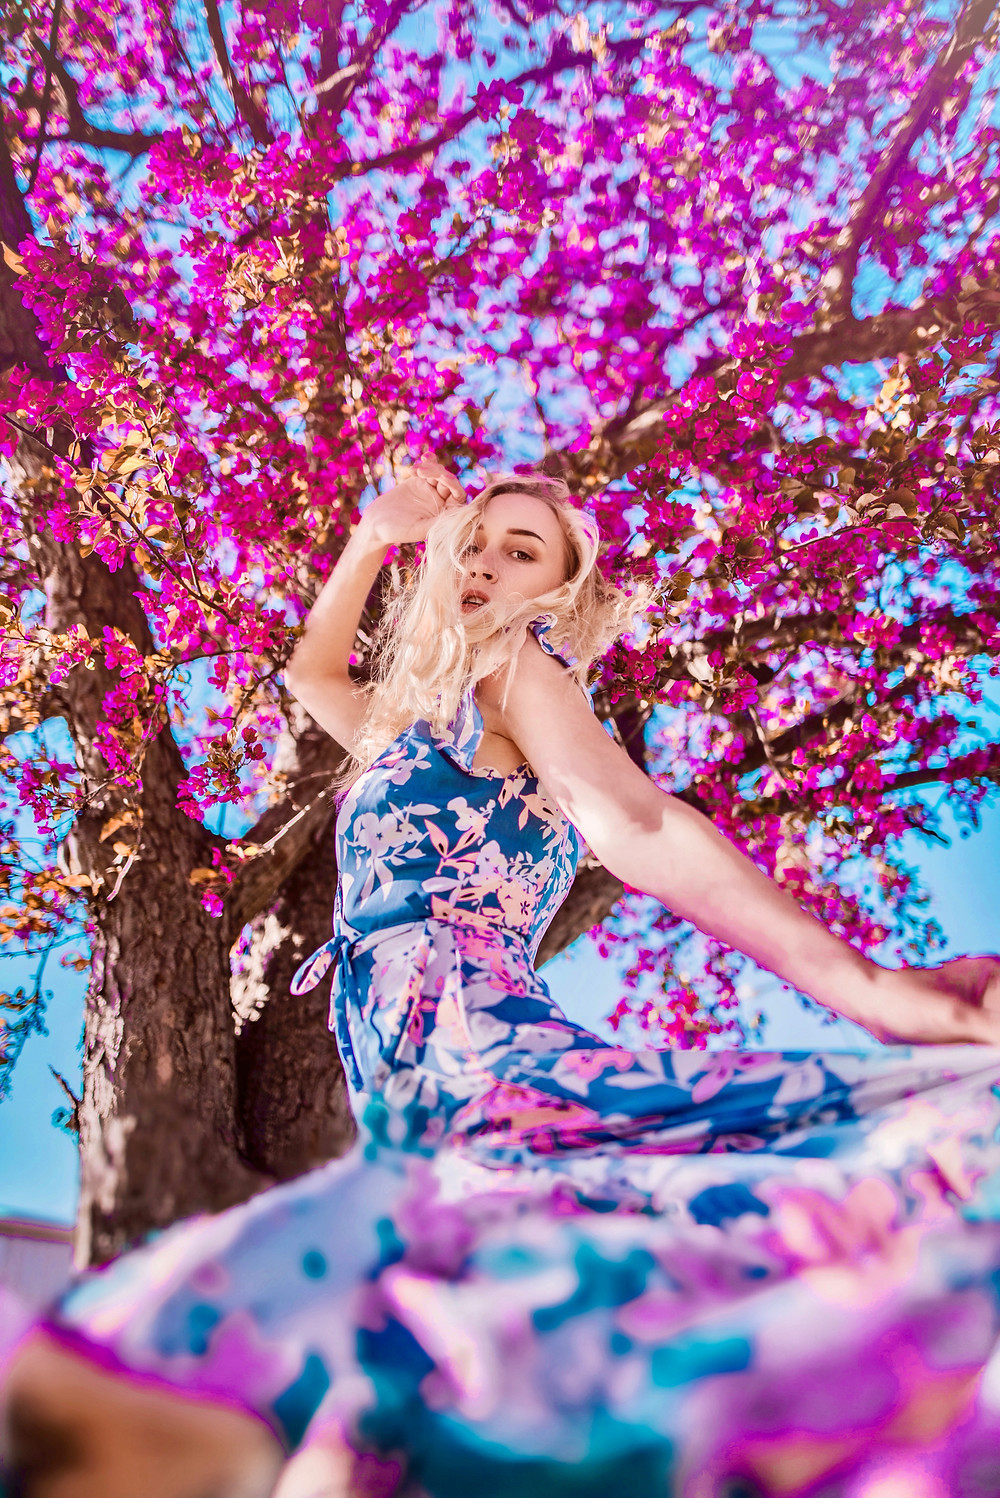 Woman with long blonde hair in a blue and magenta sleeveless dress posing in front of a tree with purple flowers.